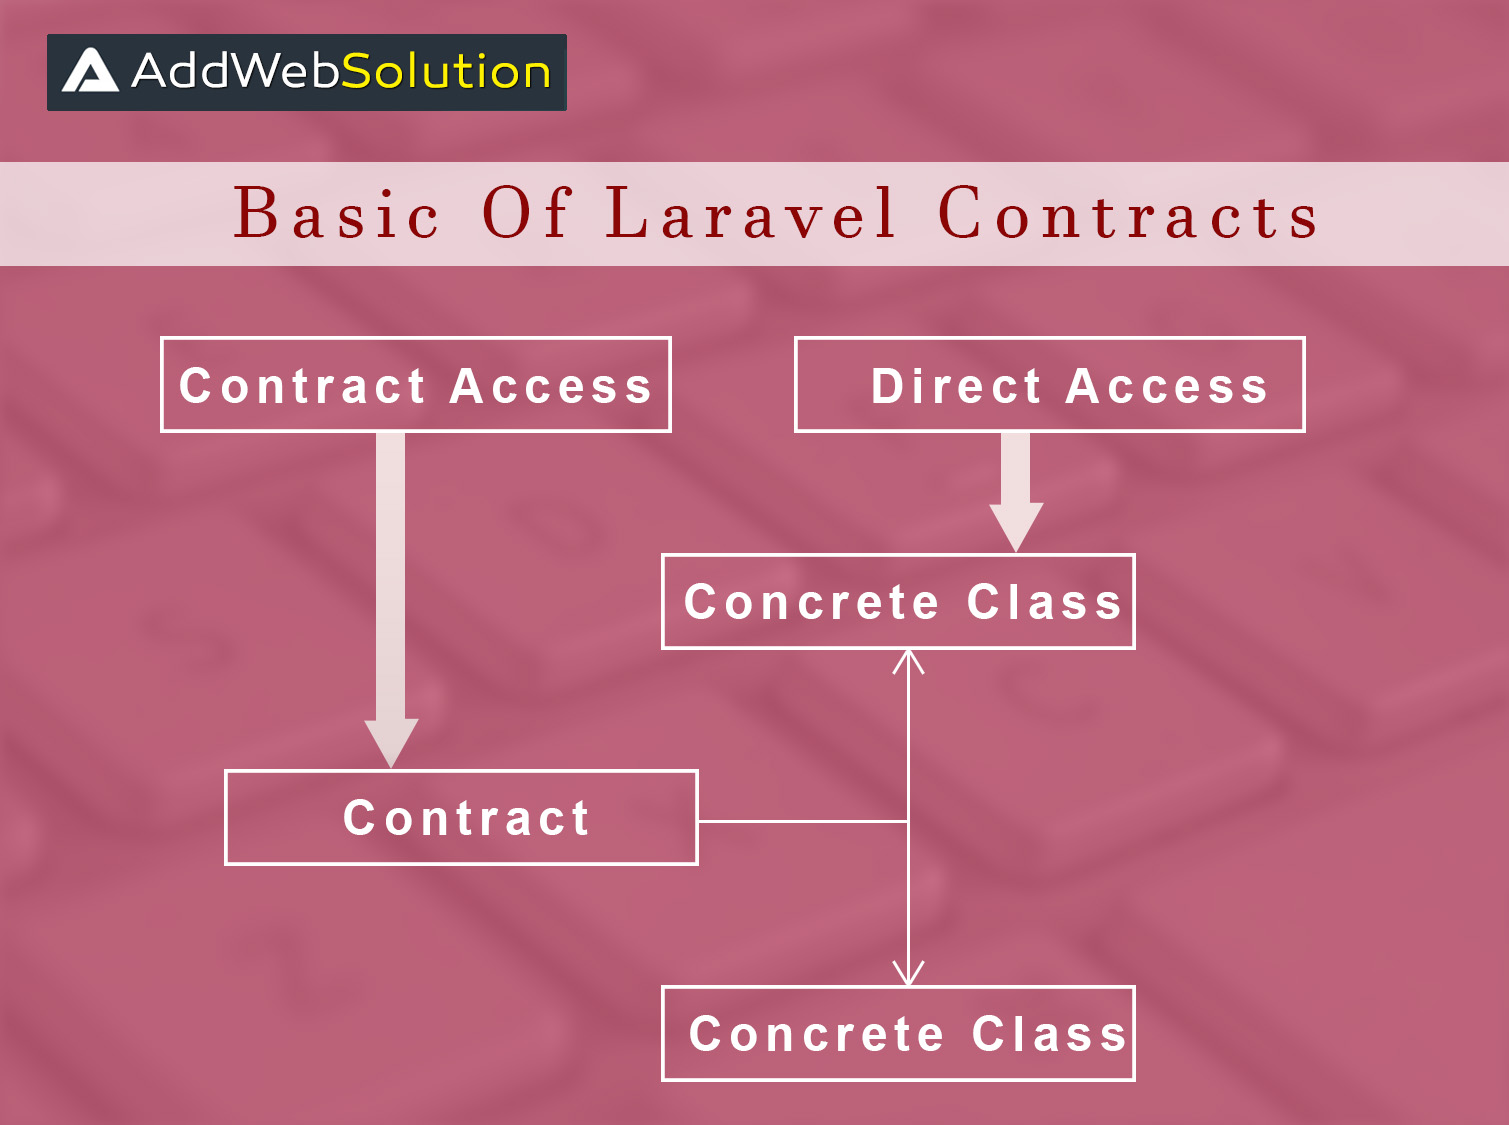 Understand Basic Of Laravel Contracts